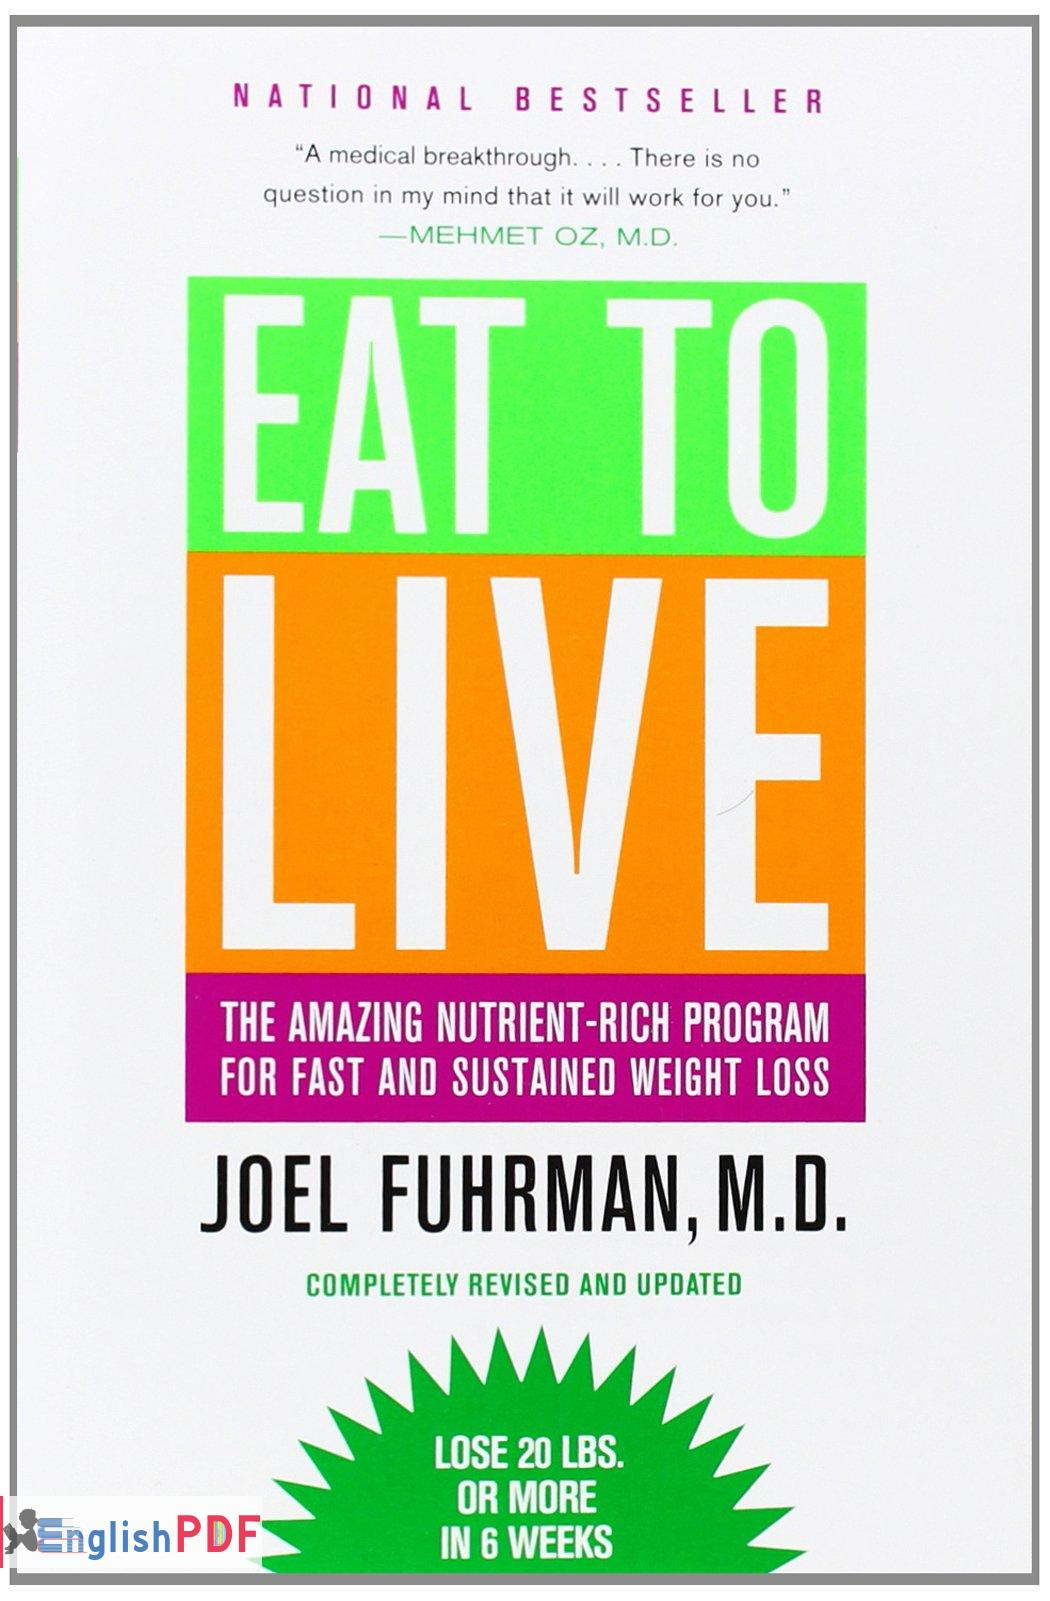 Eat To Live Pdf The Revolutionary Formula For Fast And Sustained Weight Loss Englishpdf Pdf, txt or read online from scribd. eat to live pdf the revolutionary